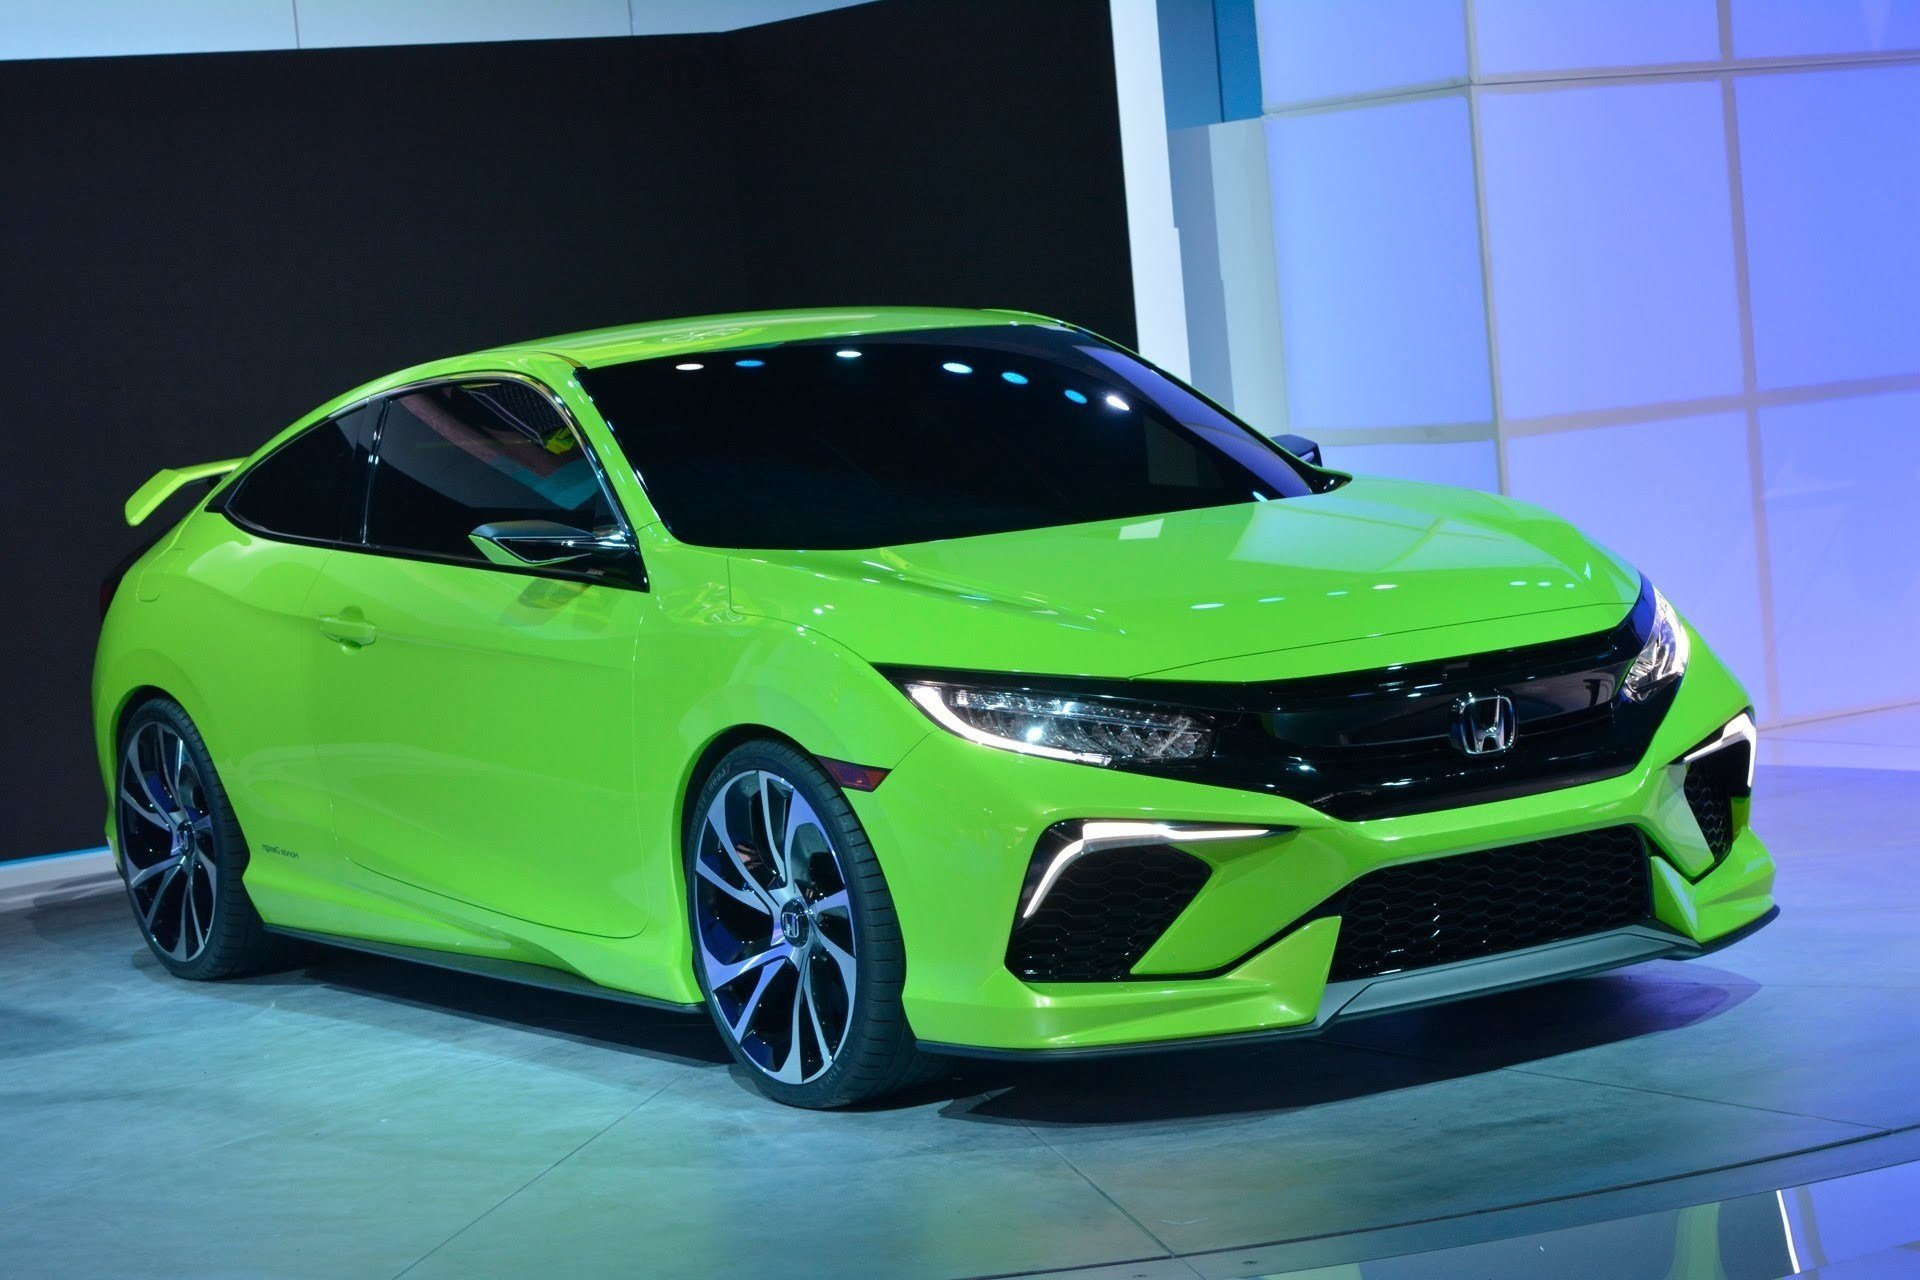 New Honda Civic Two Seater Car Hd Wallpapers Hd Wallpapers On This Month